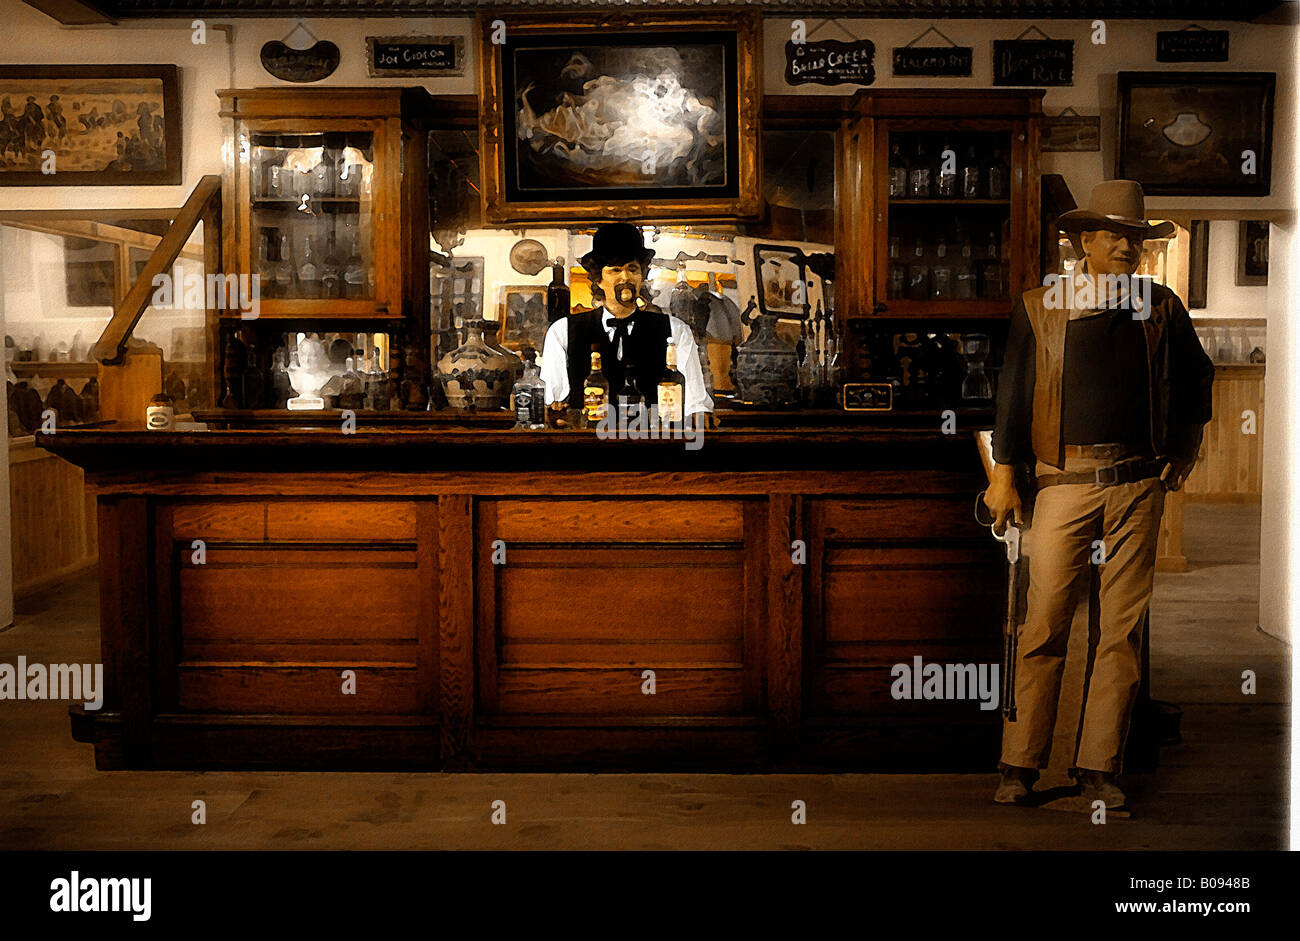 Image of a manikin bartender behind a vintage western saloon counter with a cardboard figurine of John Wayne standing - Stock Image